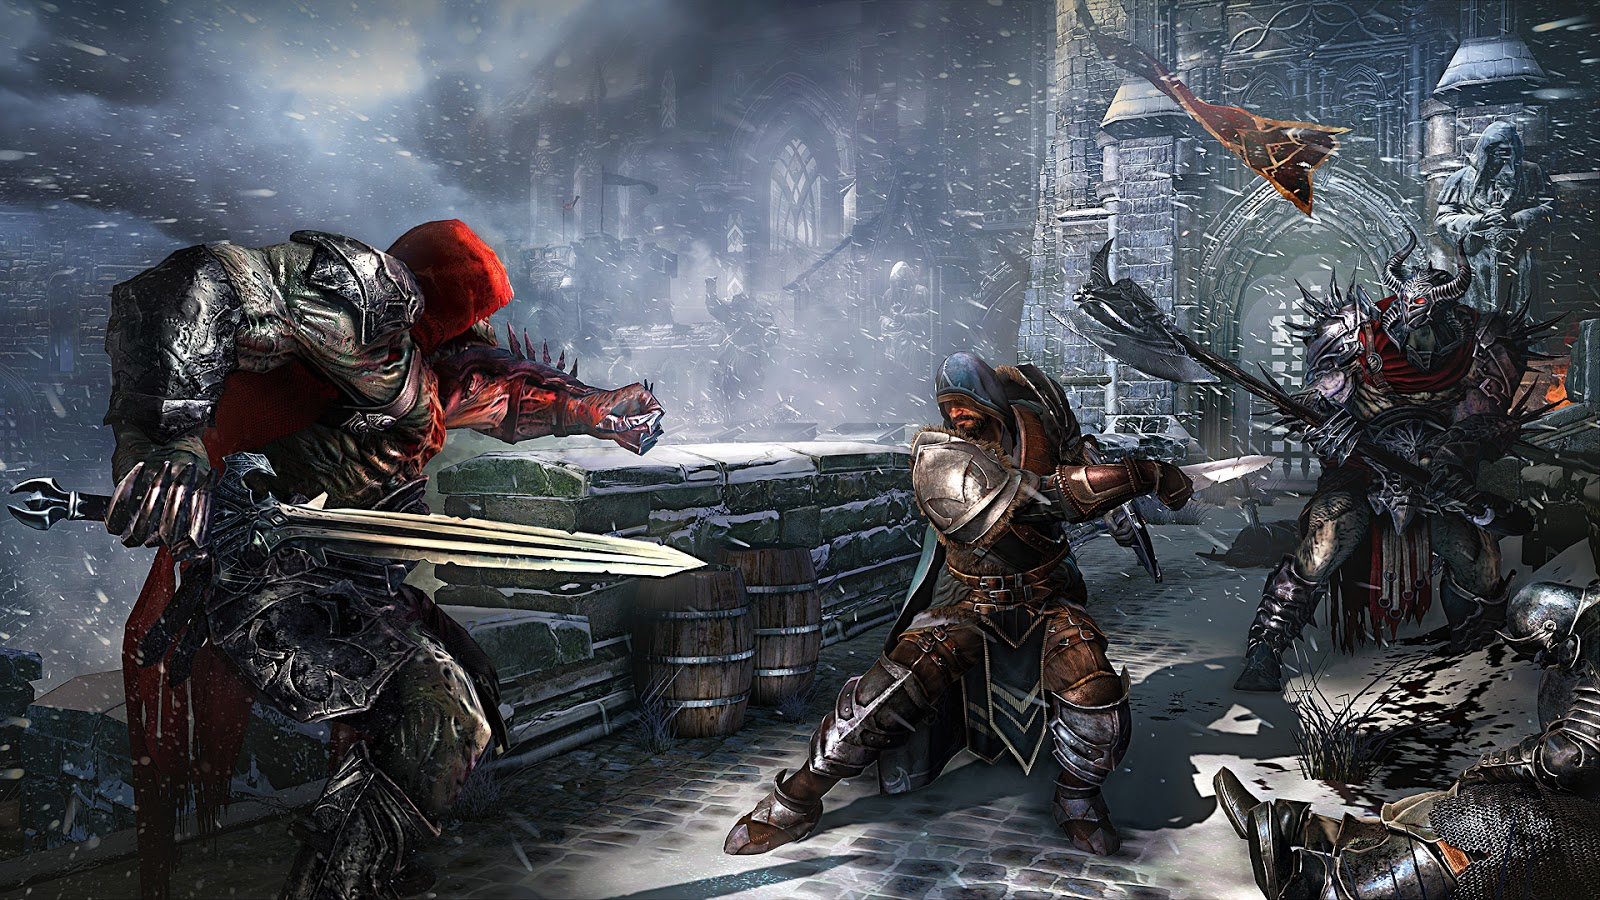 Lords of the fallen v1. 6 repack free download full version | r. G.